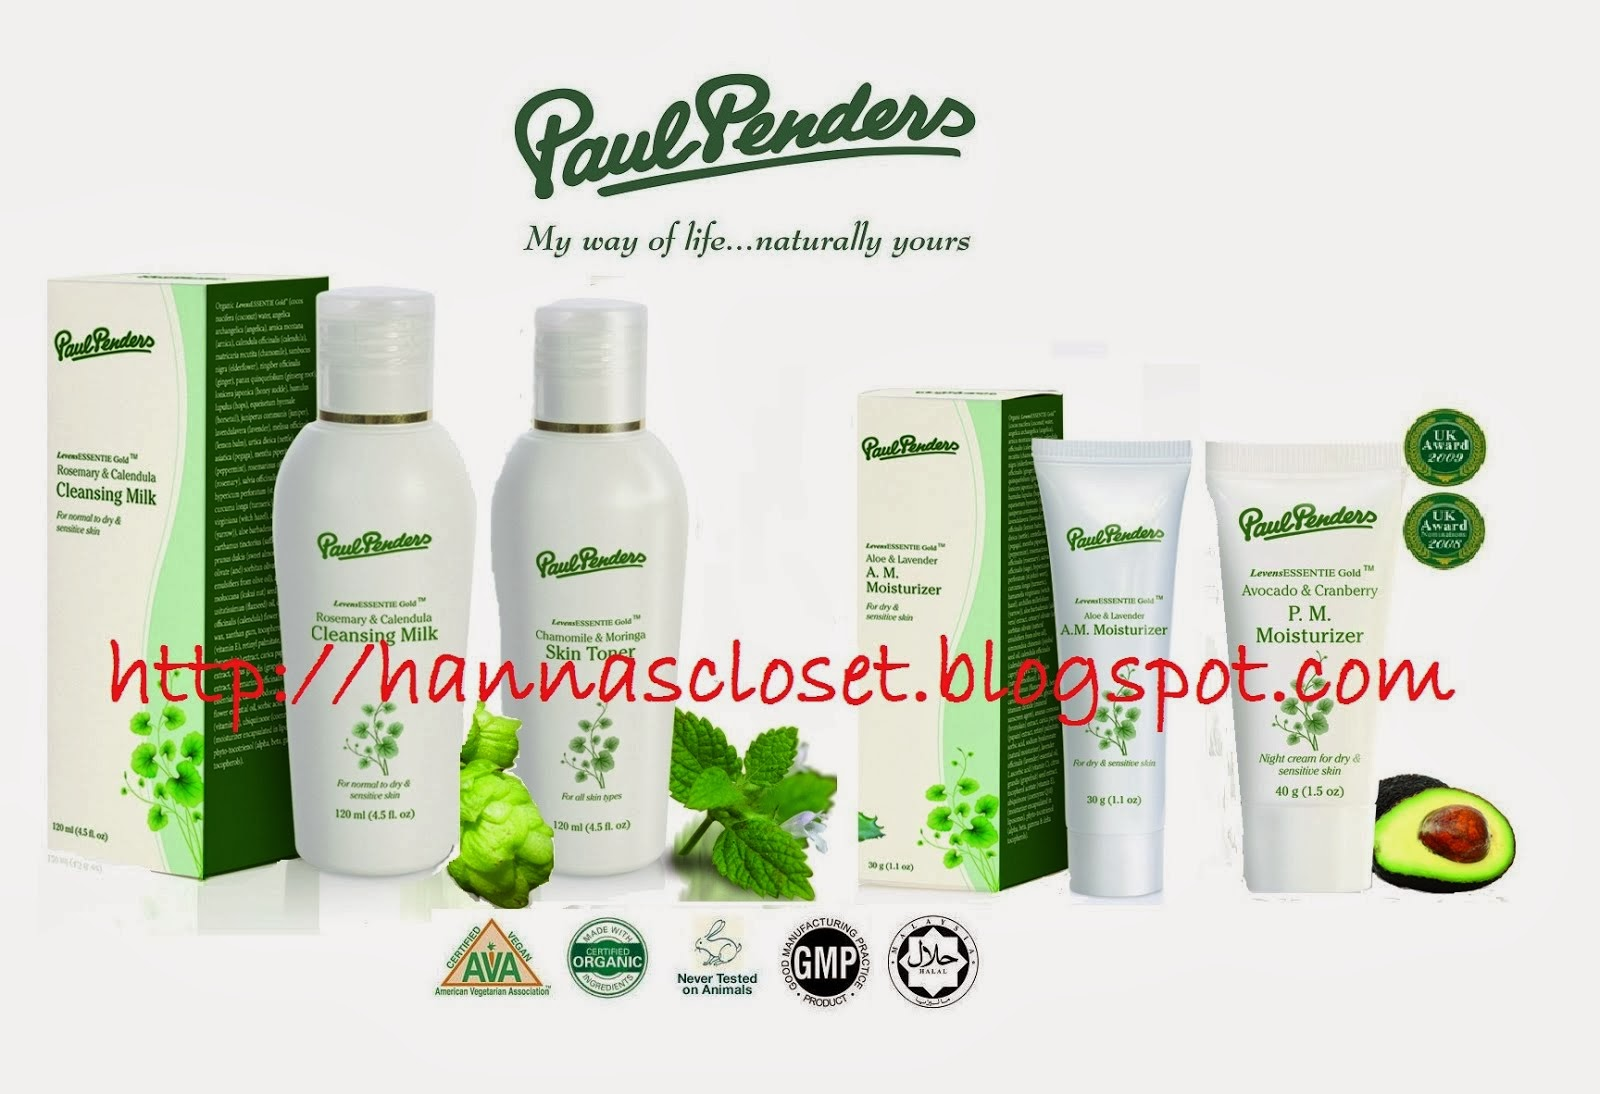 [NOW AVAILABLE] Paul Penders Skincare, 100% Natural, Organic and Halal